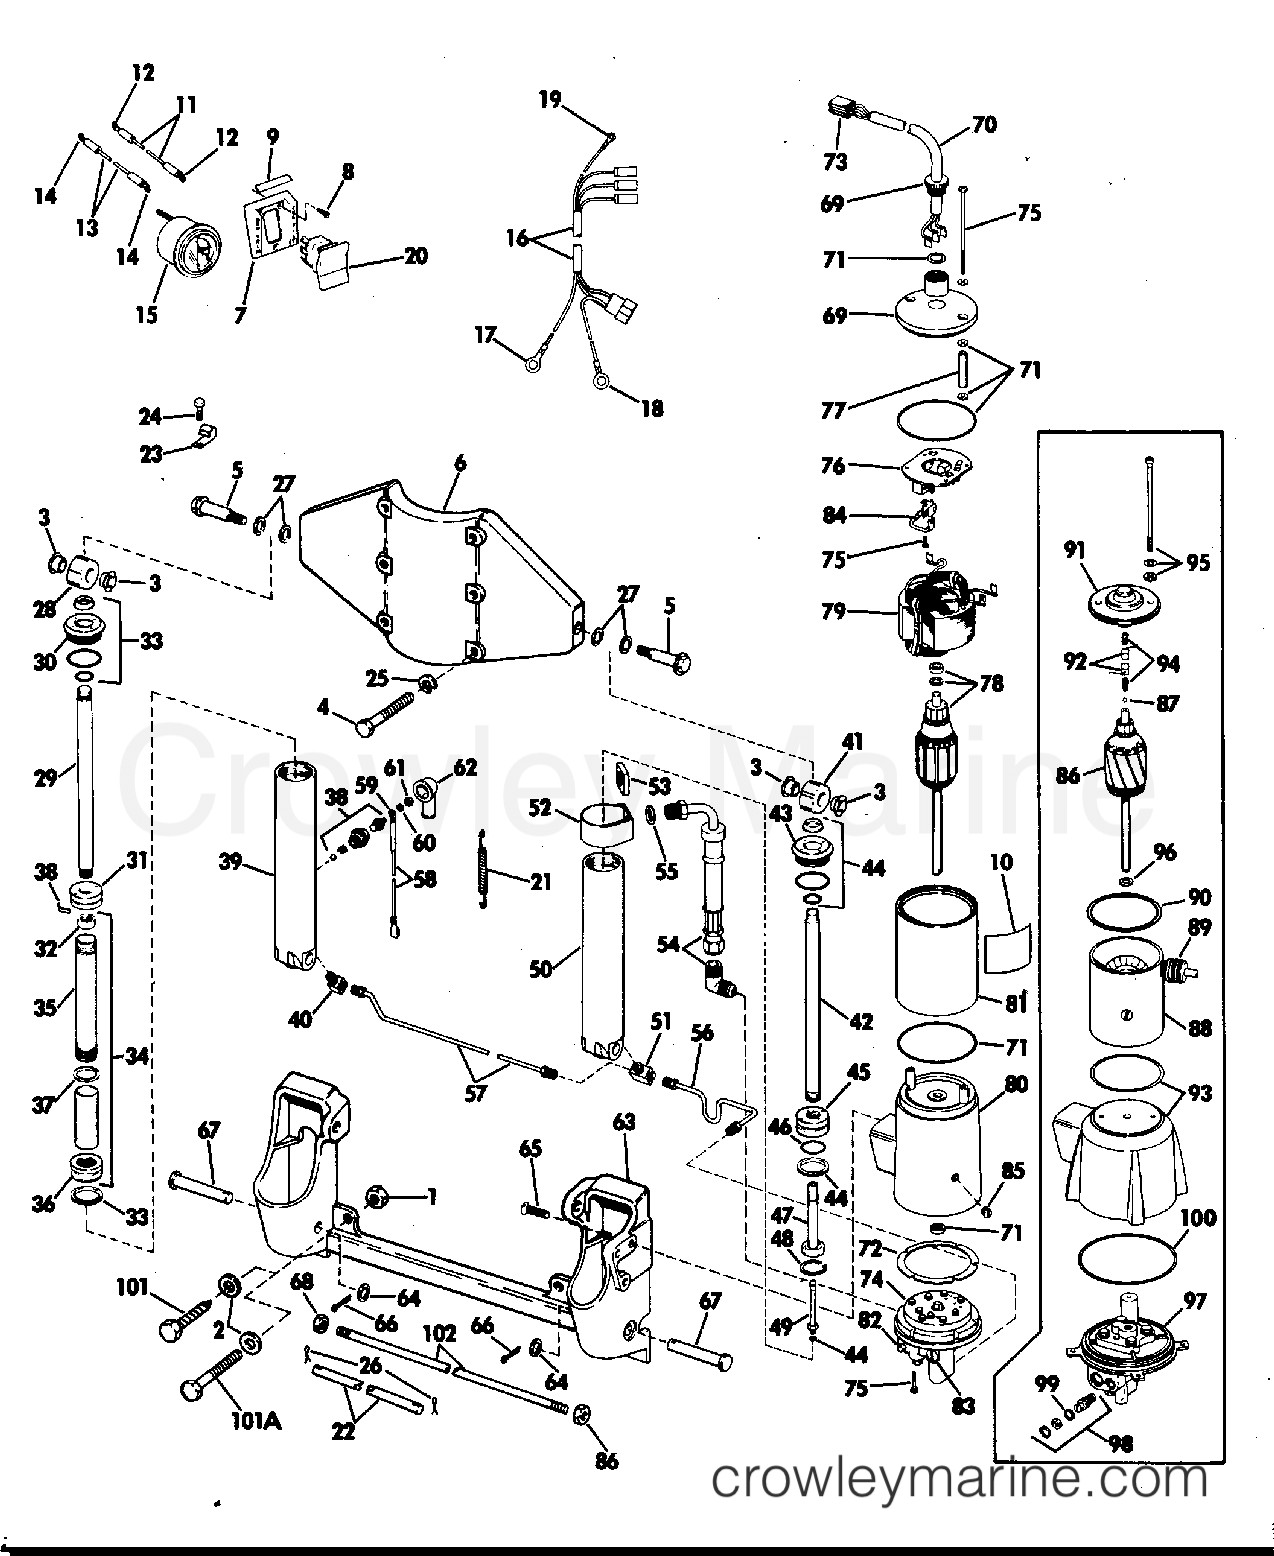 Evinrude Outboard Parts Diagram Power Tilt and Trim 50 Hp 1974 Rigging Parts Accessories Of Evinrude Outboard Parts Diagram